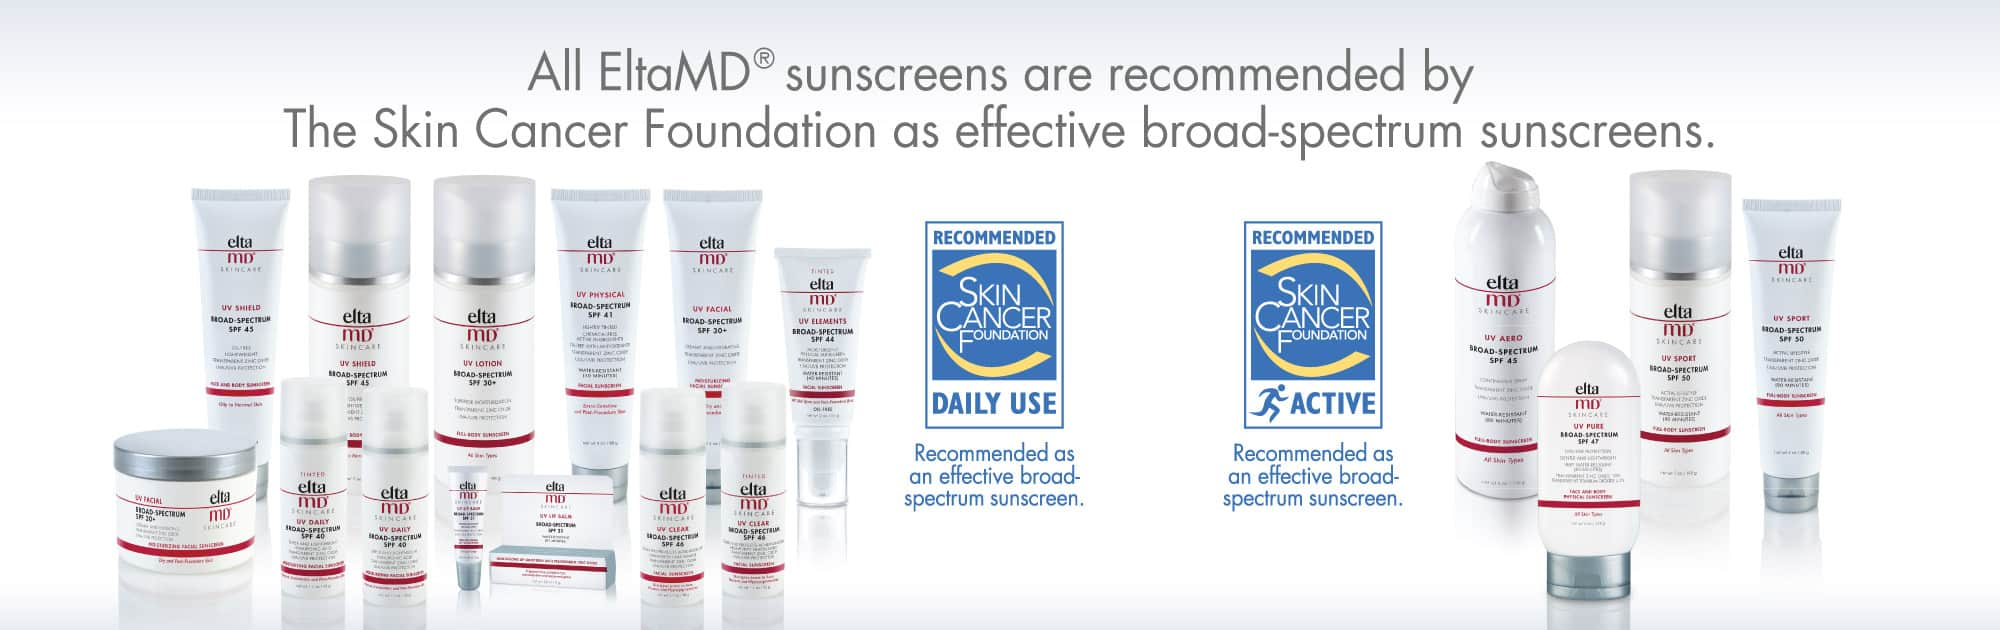 cf54ab6766a2a A broad-spectrum sunscreen helps prevent sunburn and if used as directed  with other sun protection measures